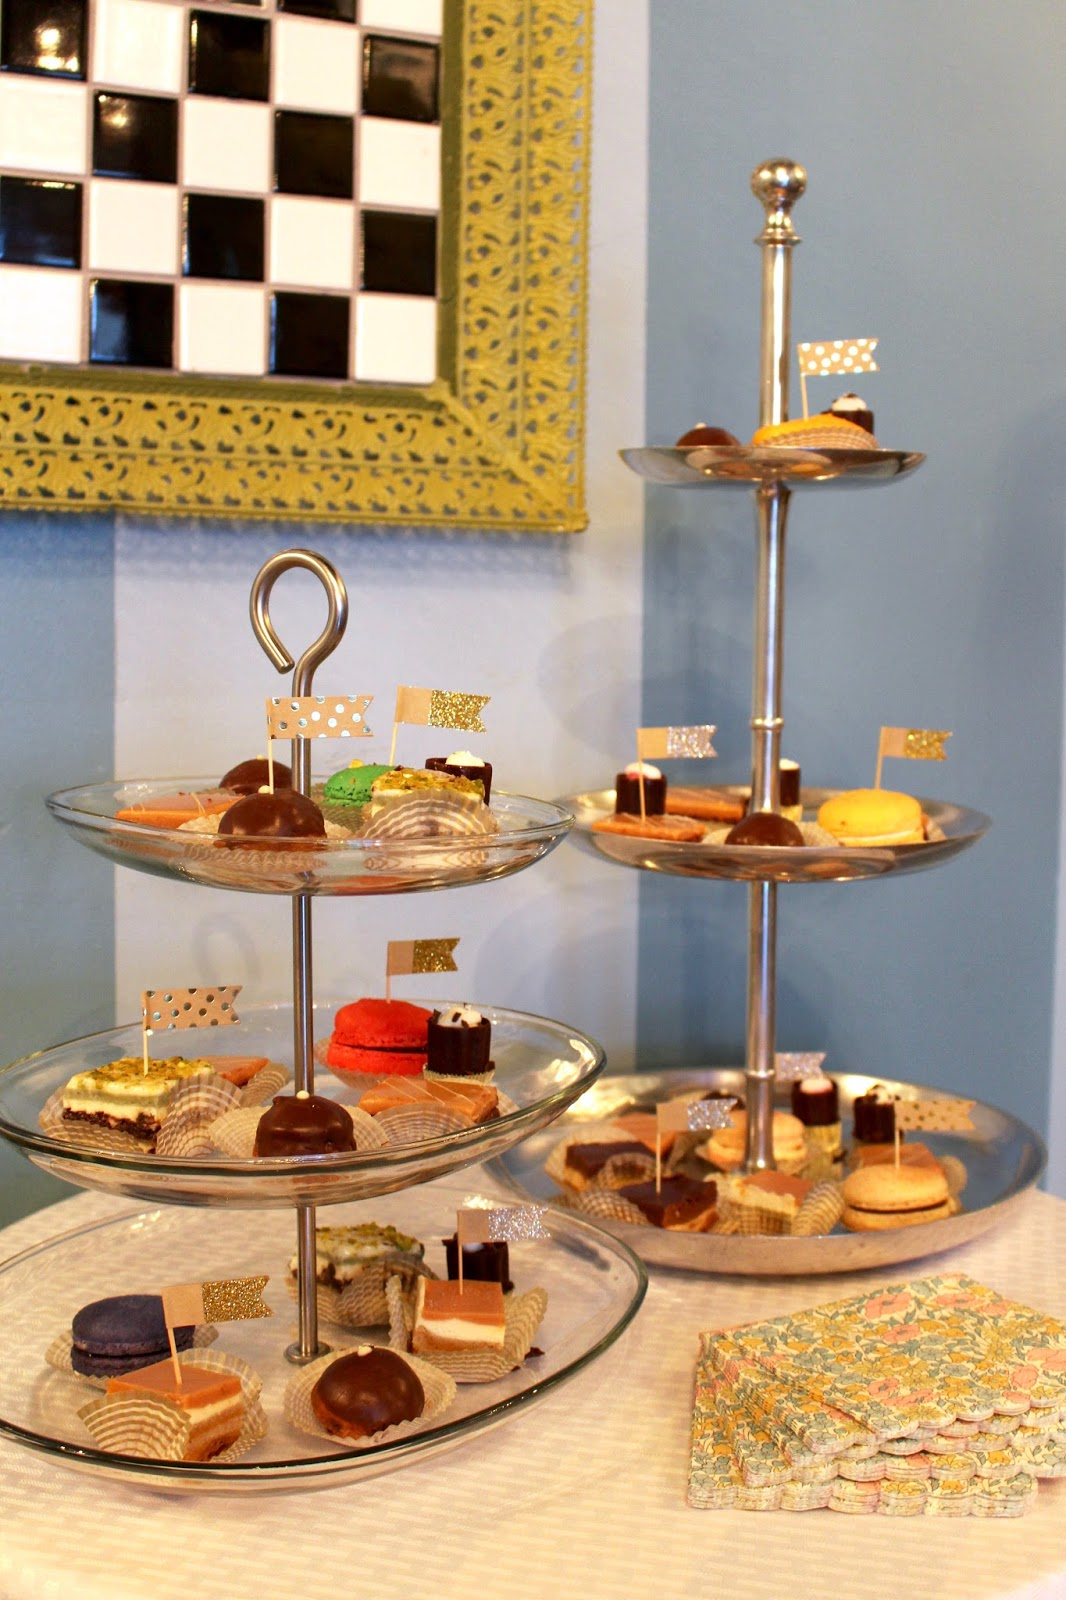 Amelie's French bakery